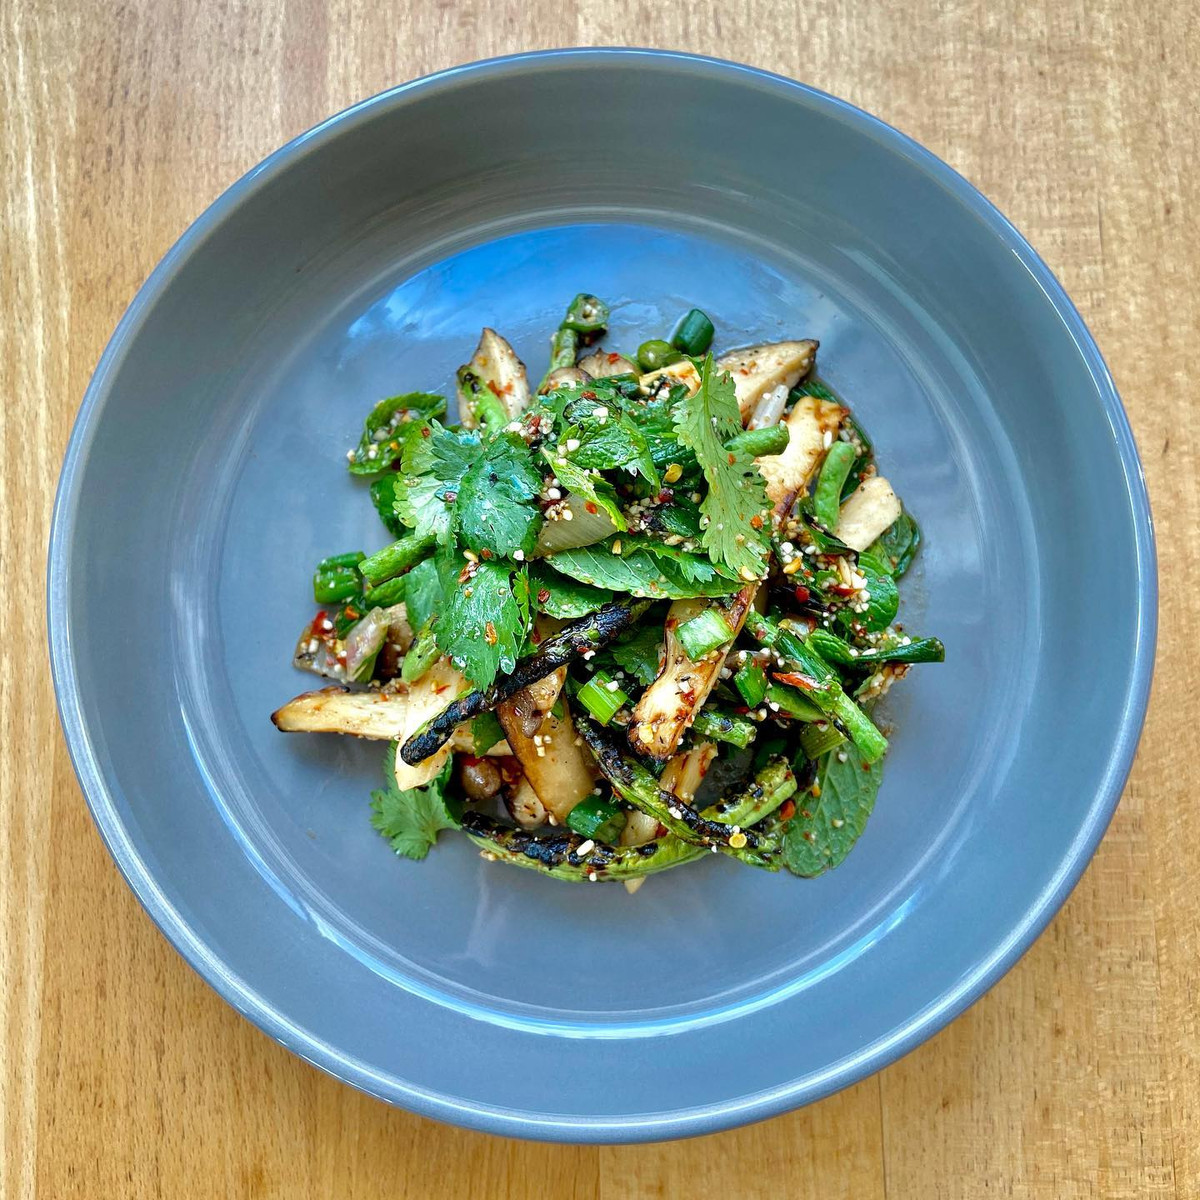 A bowl of eggplant topped with herbs and chili